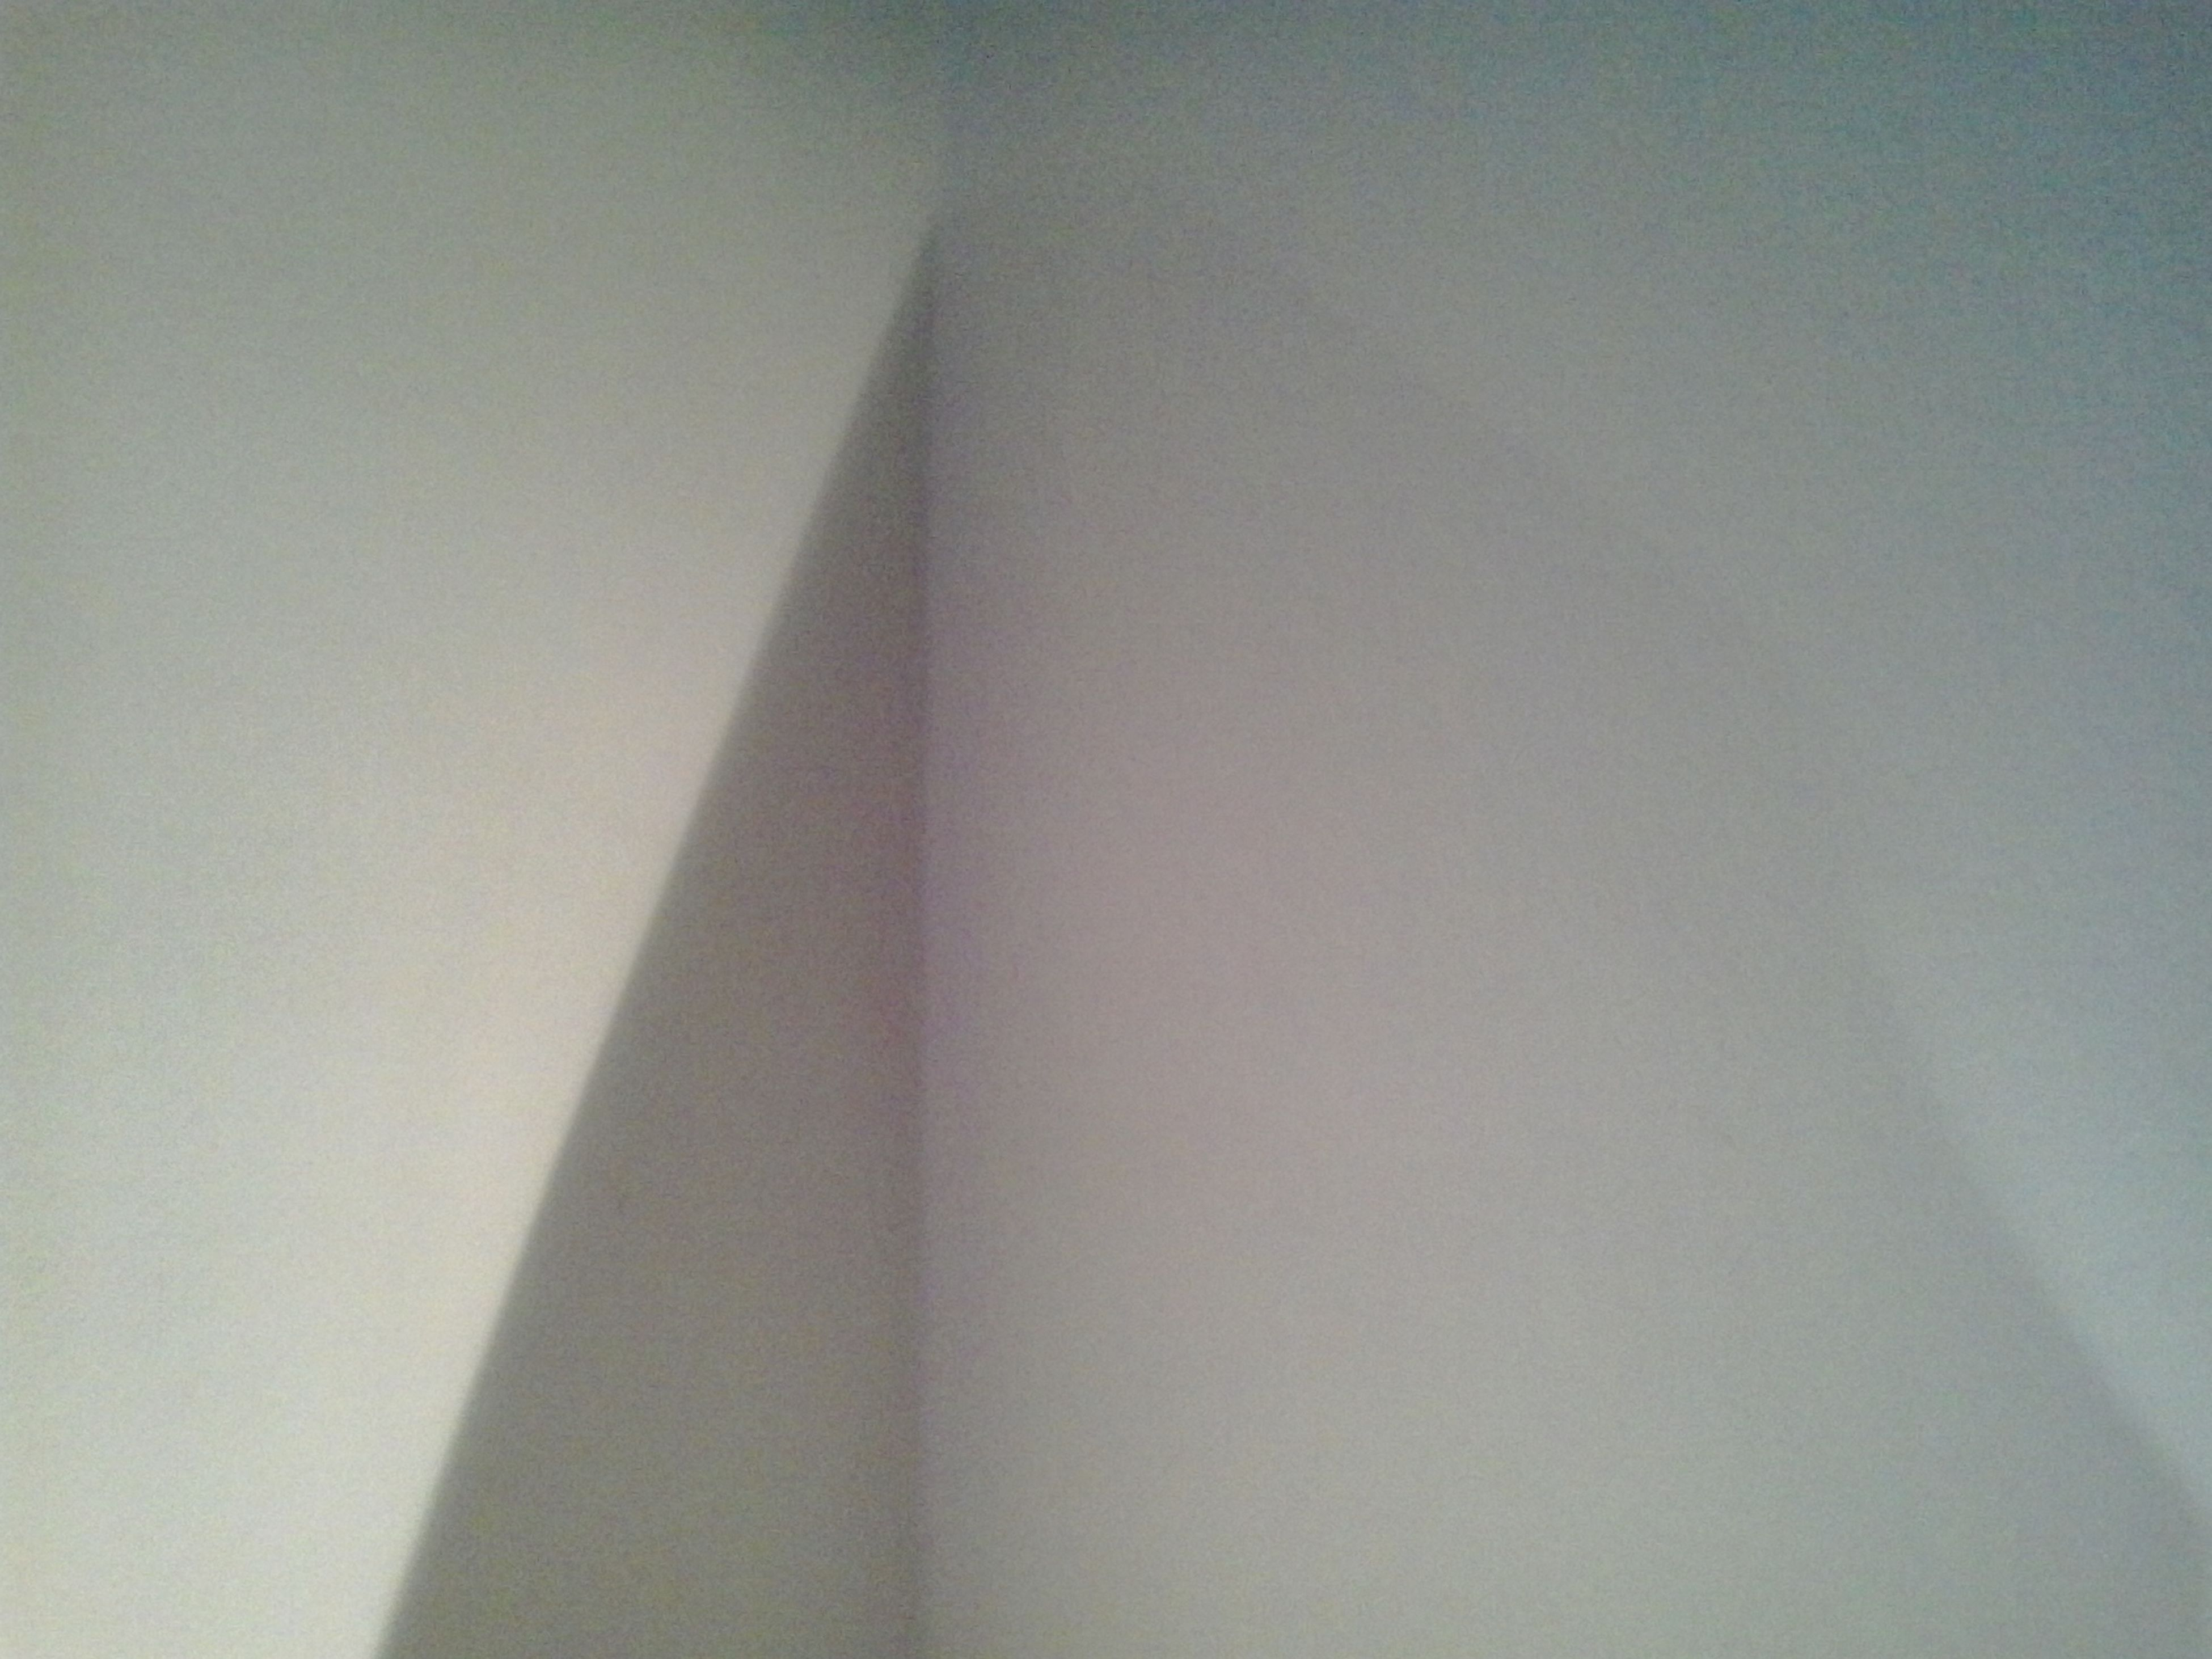 indoors, architecture, built structure, wall - building feature, low angle view, copy space, no people, wall, pattern, ceiling, shadow, sunlight, day, home interior, building, diminishing perspective, textured, design, backgrounds, white color